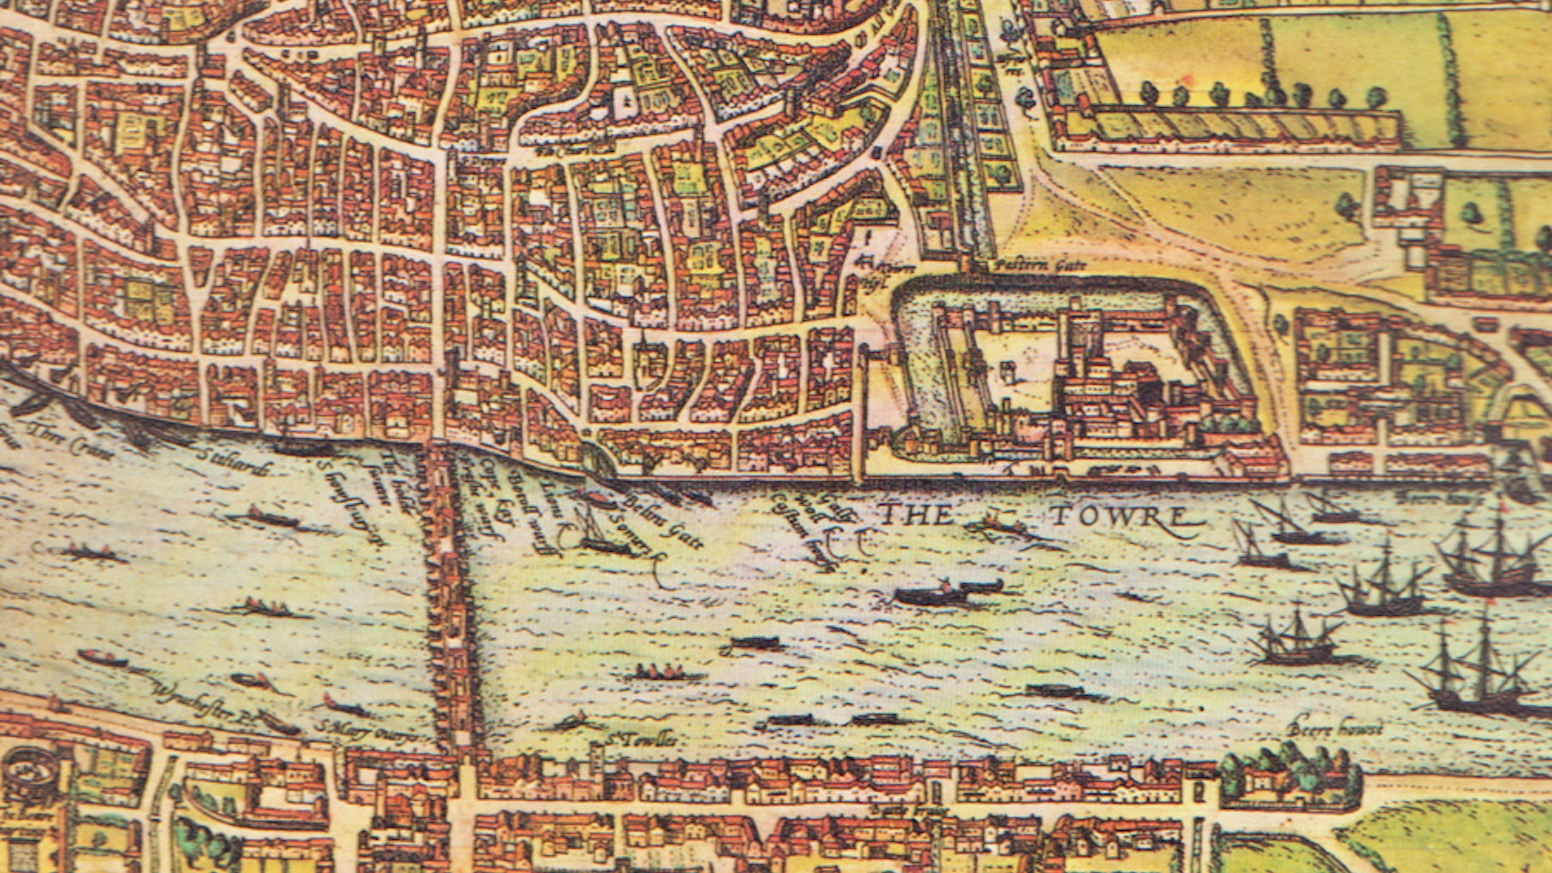 i want to make posters of 16th century city maps of london paris and rome that will also include a simple matrix game